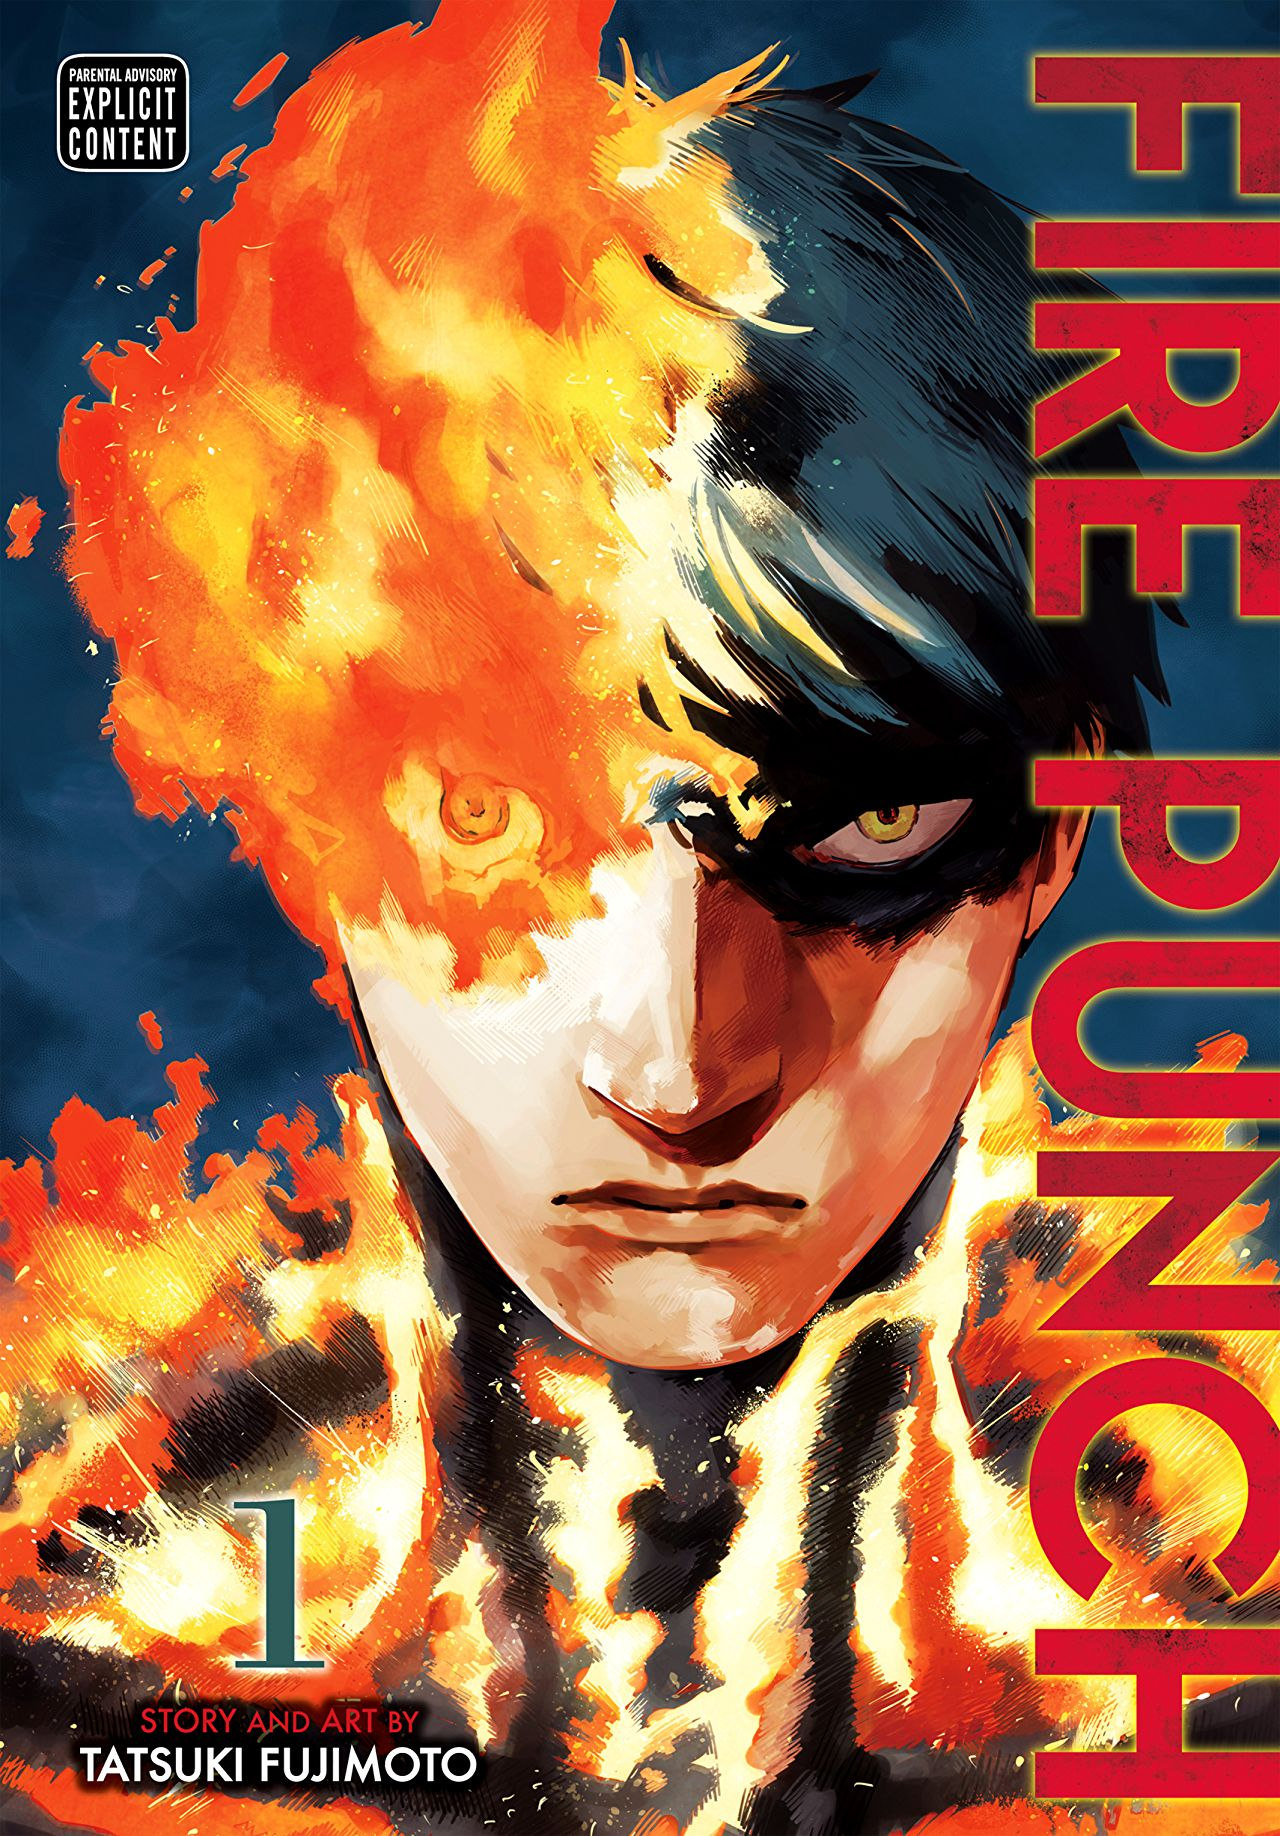 Fire Punch Vol. 1 Review